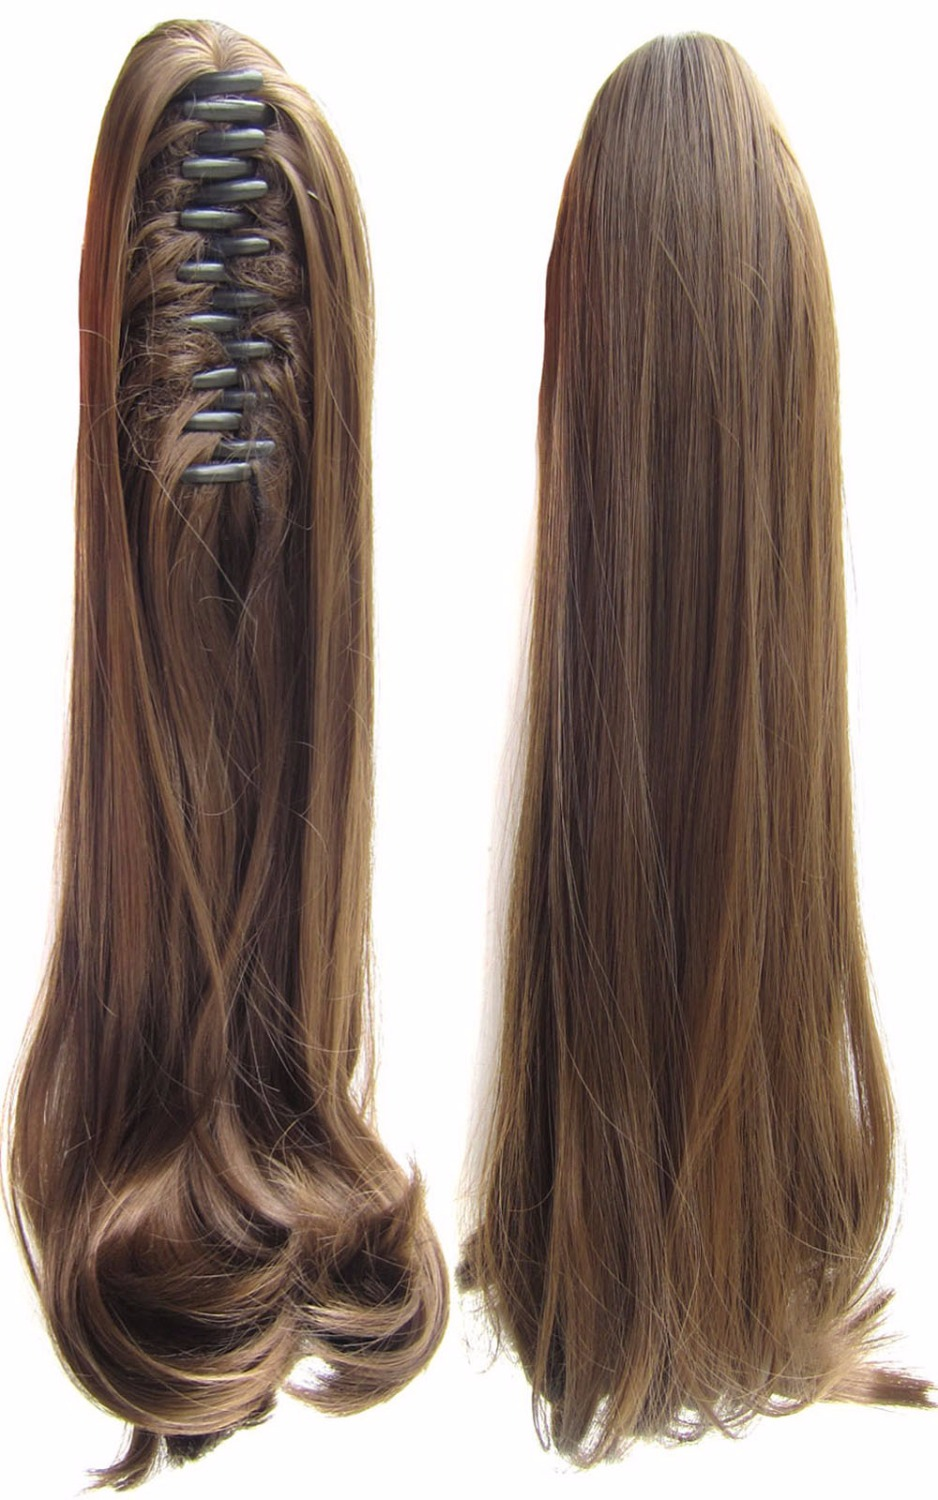 1pcs 18inch Clip In On Hair Extension Synthetic Hair Curly Dark